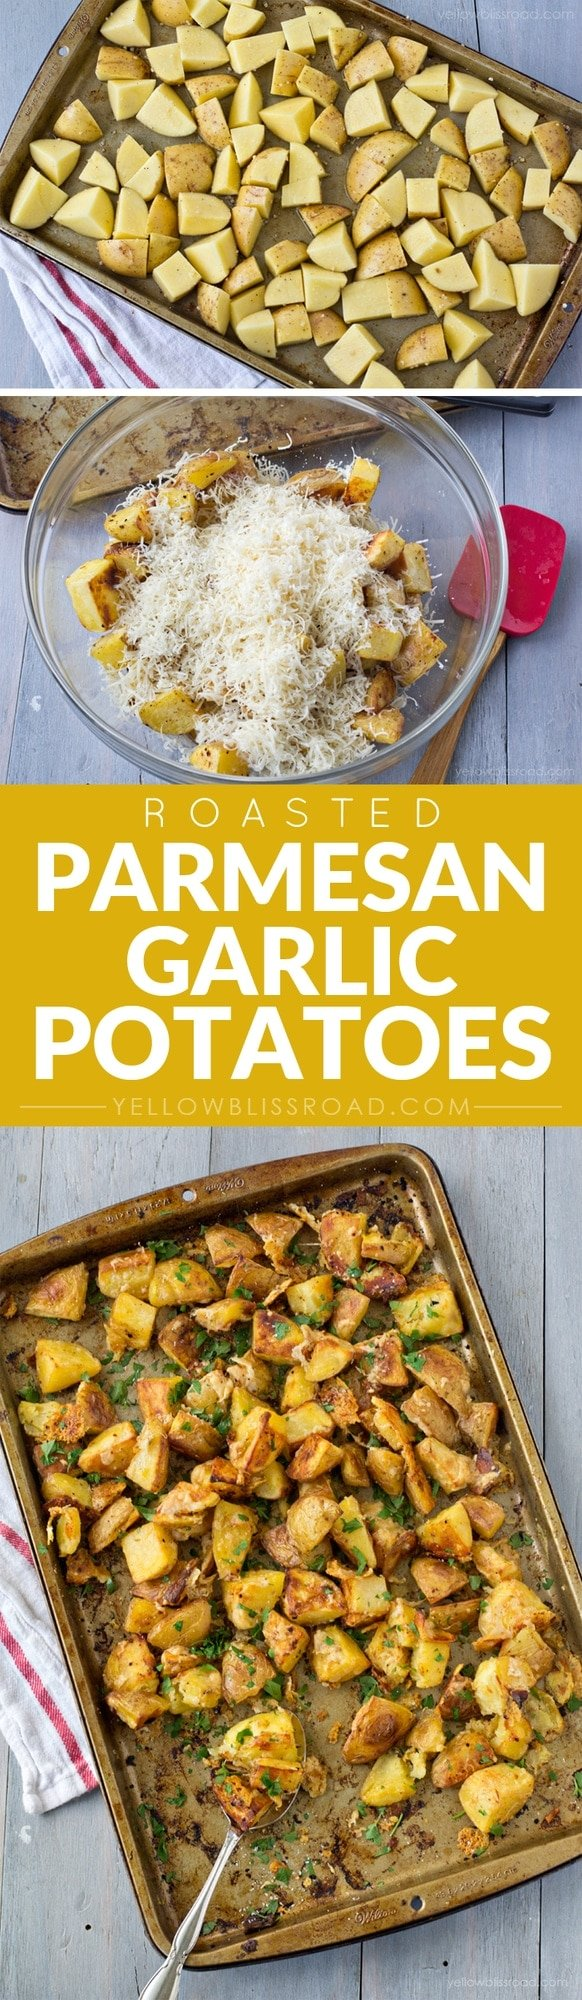 Roasted Parmesan and Garlic Potatoes